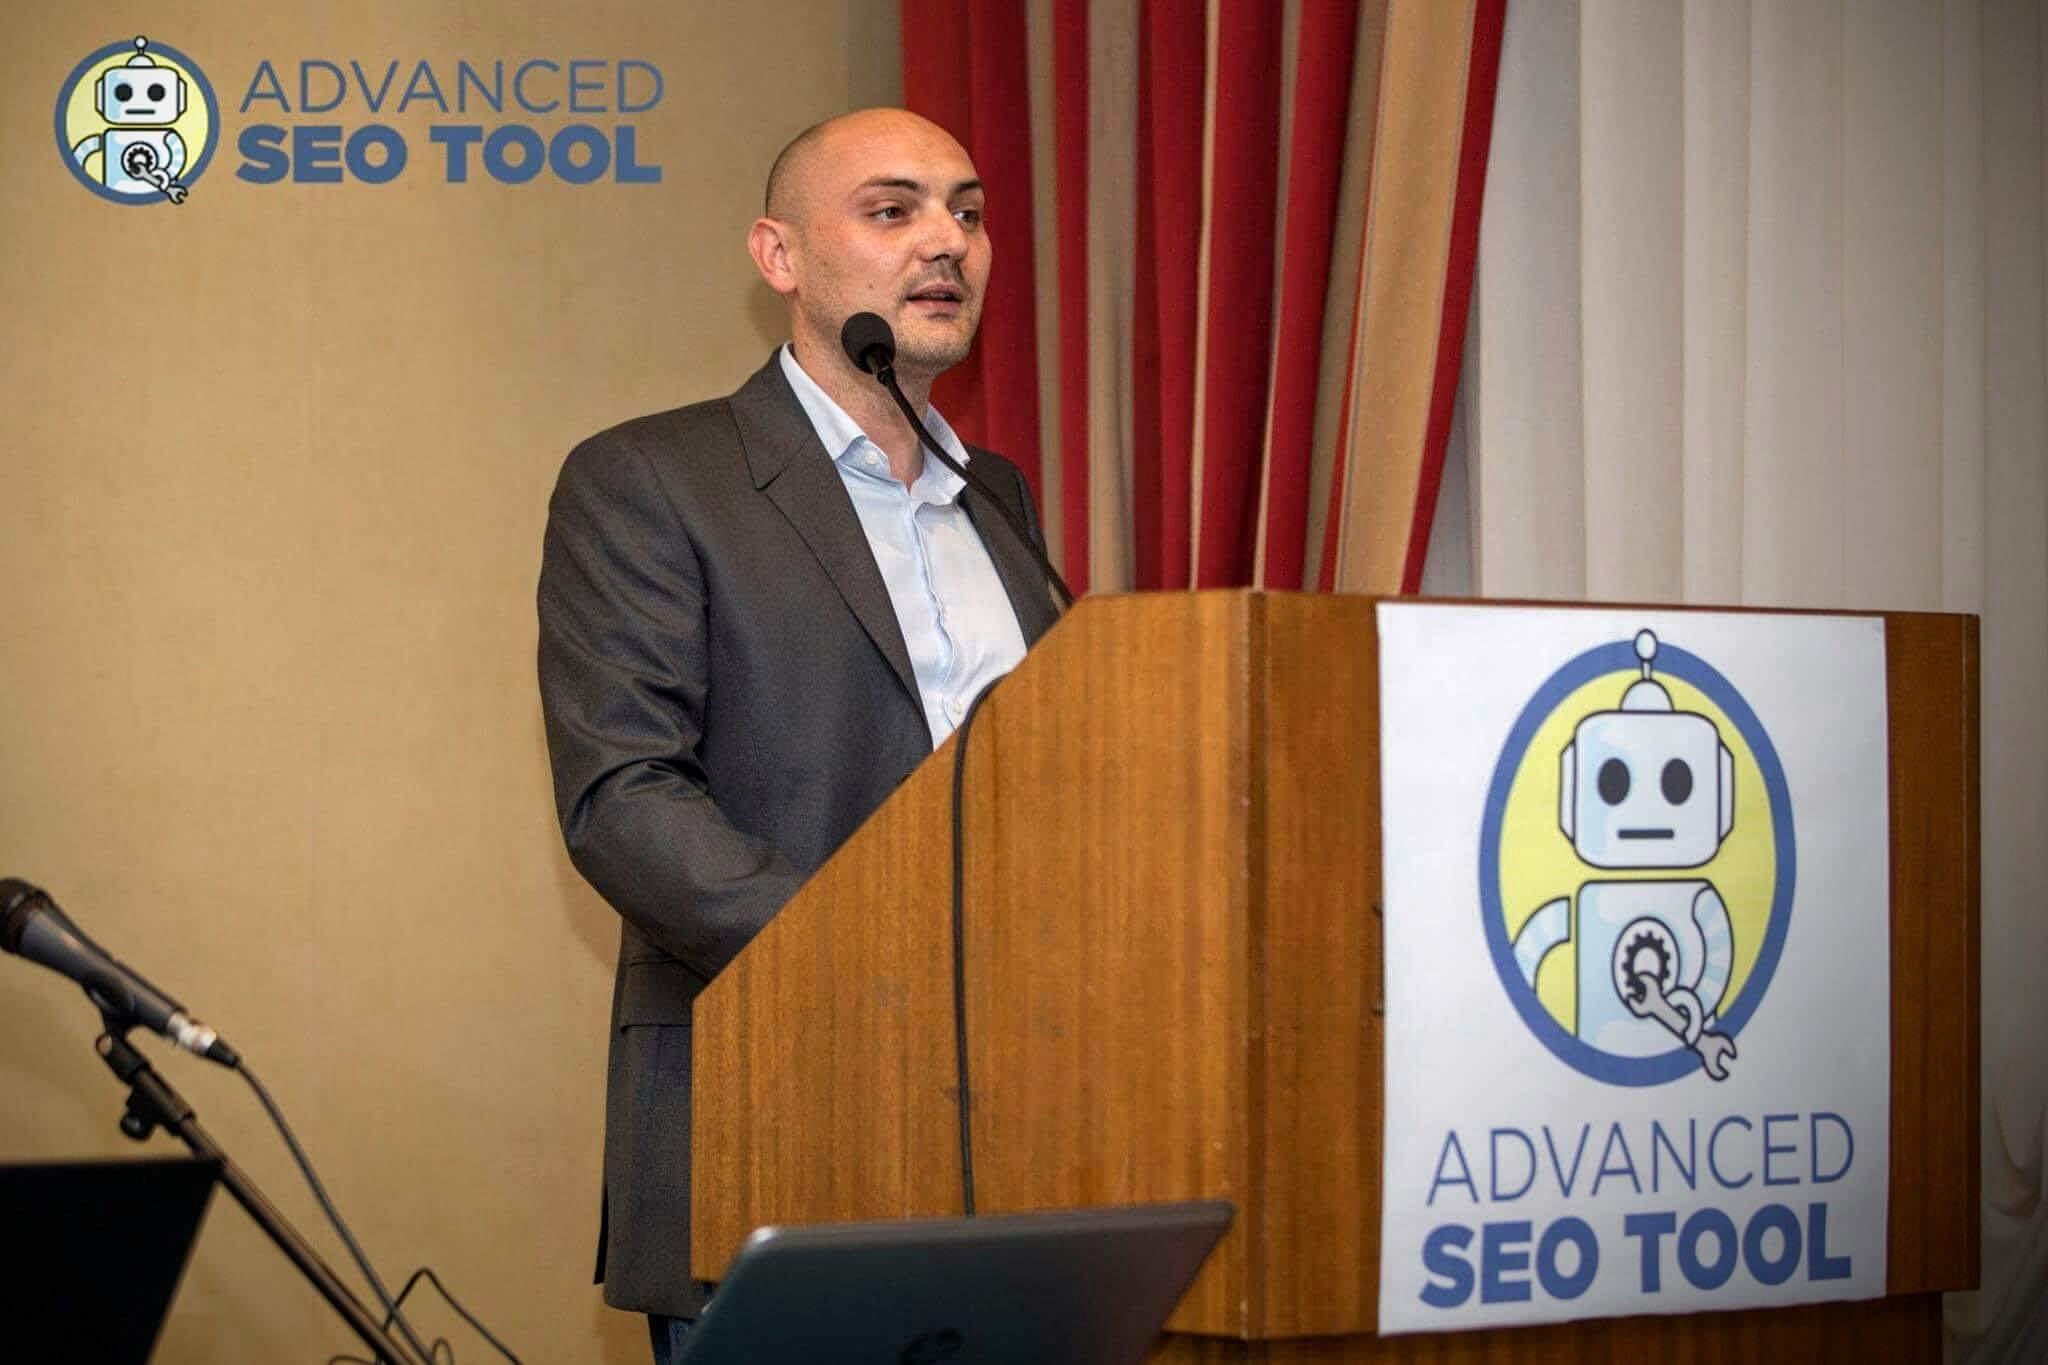 Giovanni Sacheli Relatore Advanced SEO Tool 2016